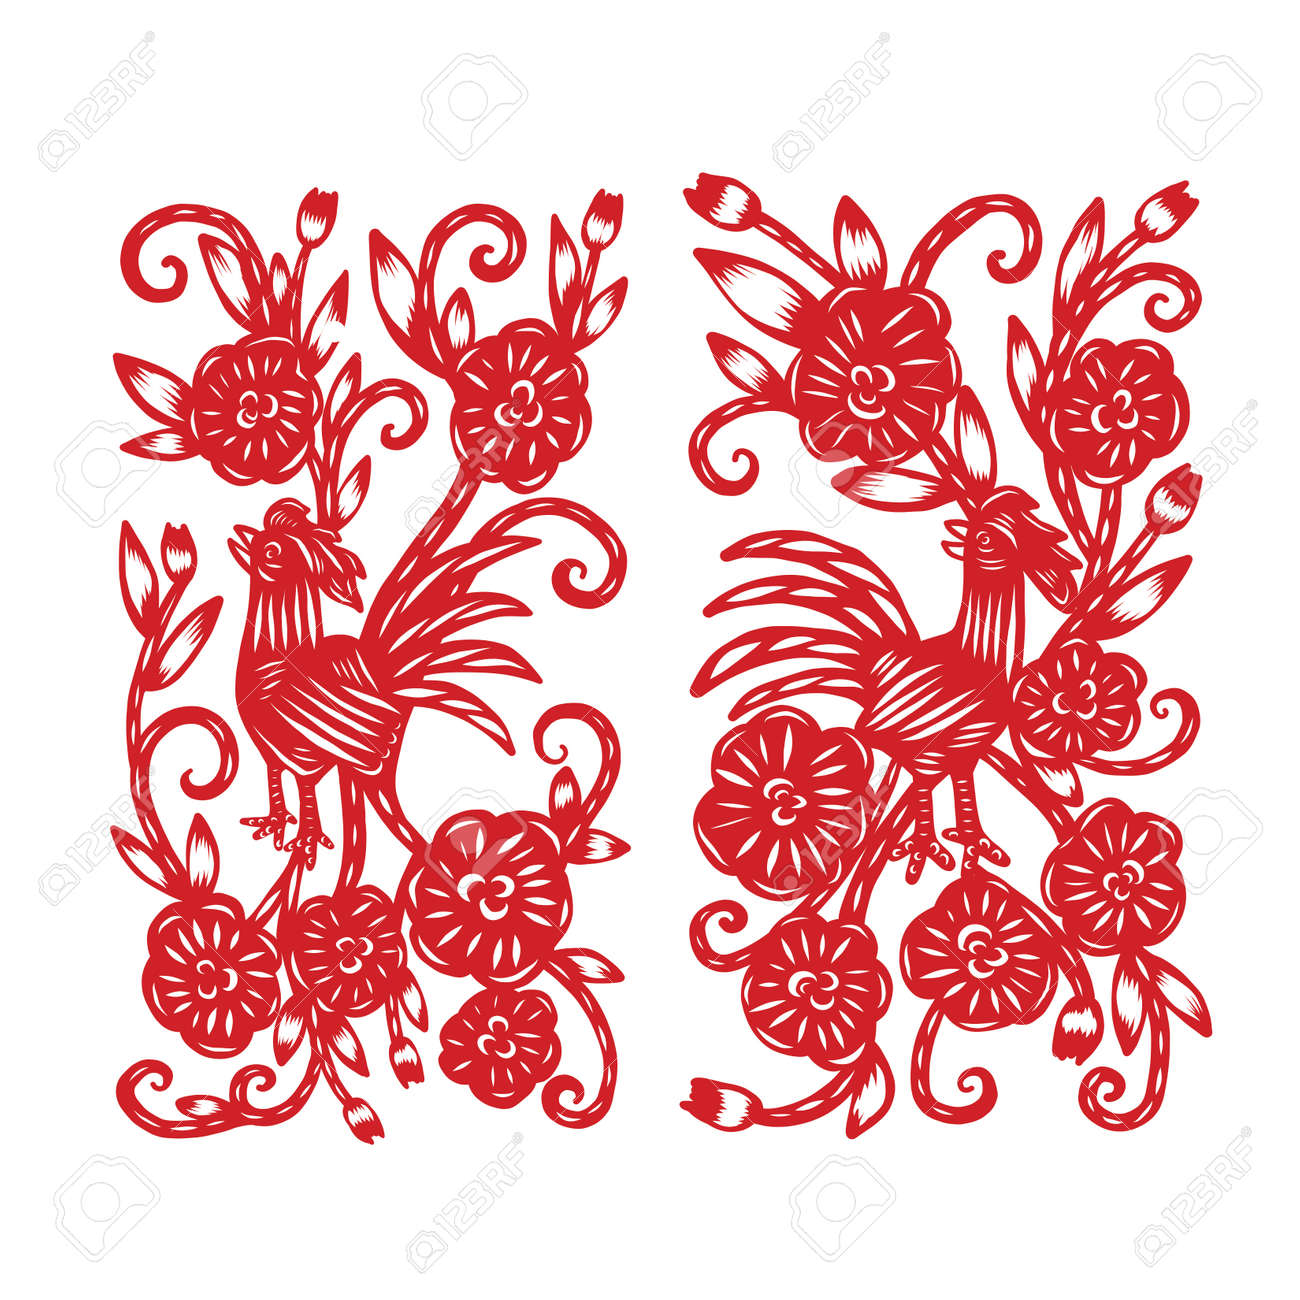 Chinese paper cutting flower paper cutting isolated illustration chinese paper cutting flower paper cutting isolated illustration stock vector 65026948 mightylinksfo